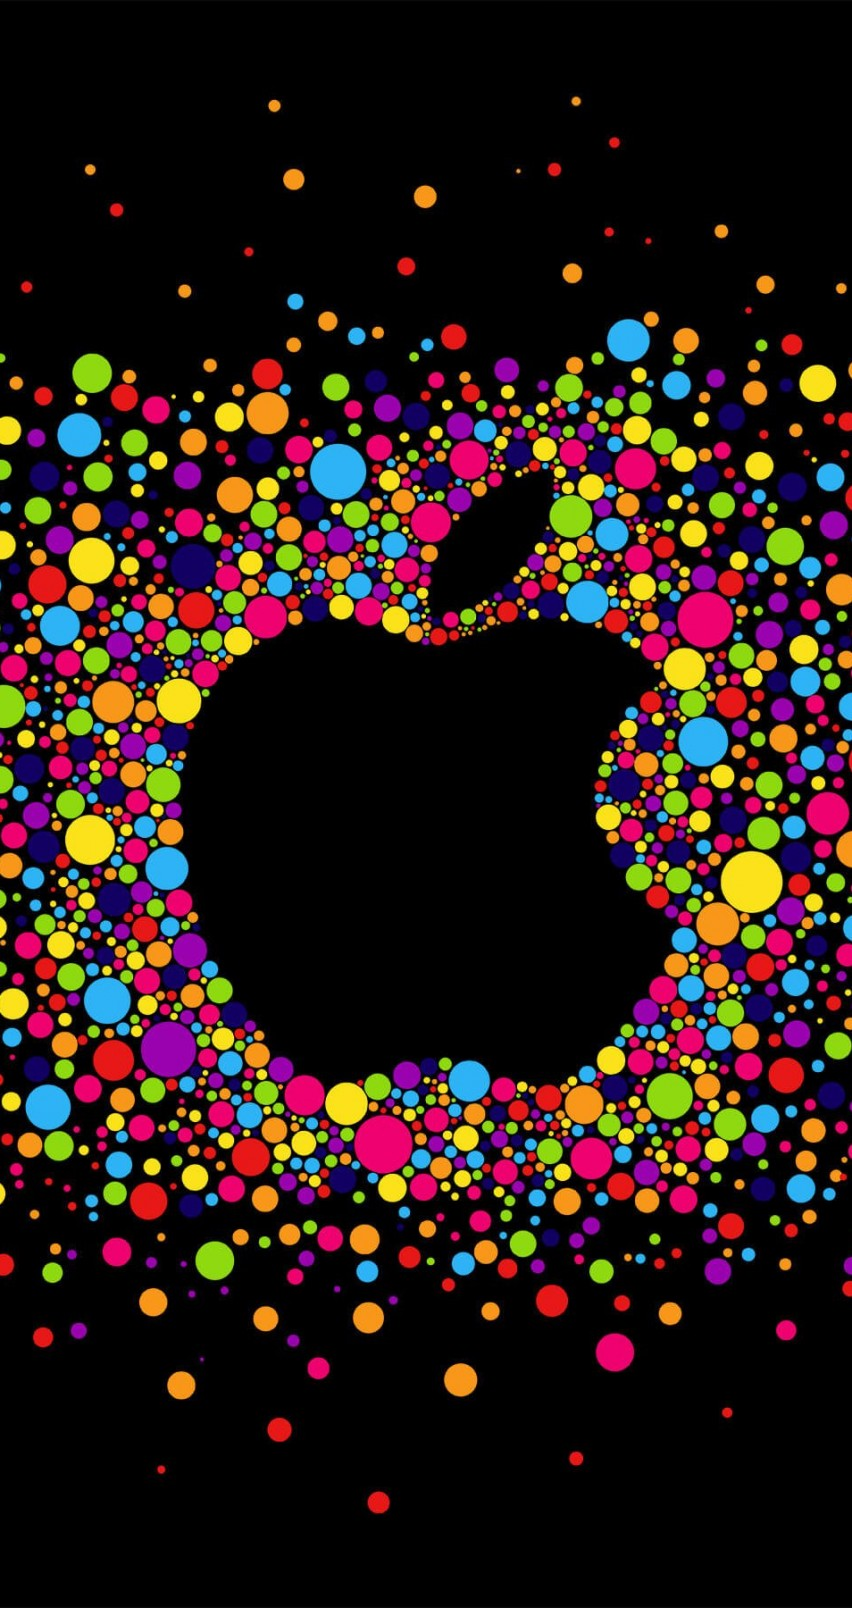 Black Apple Logo Particles Wallpaper for Apple iPhone 6 / 6s